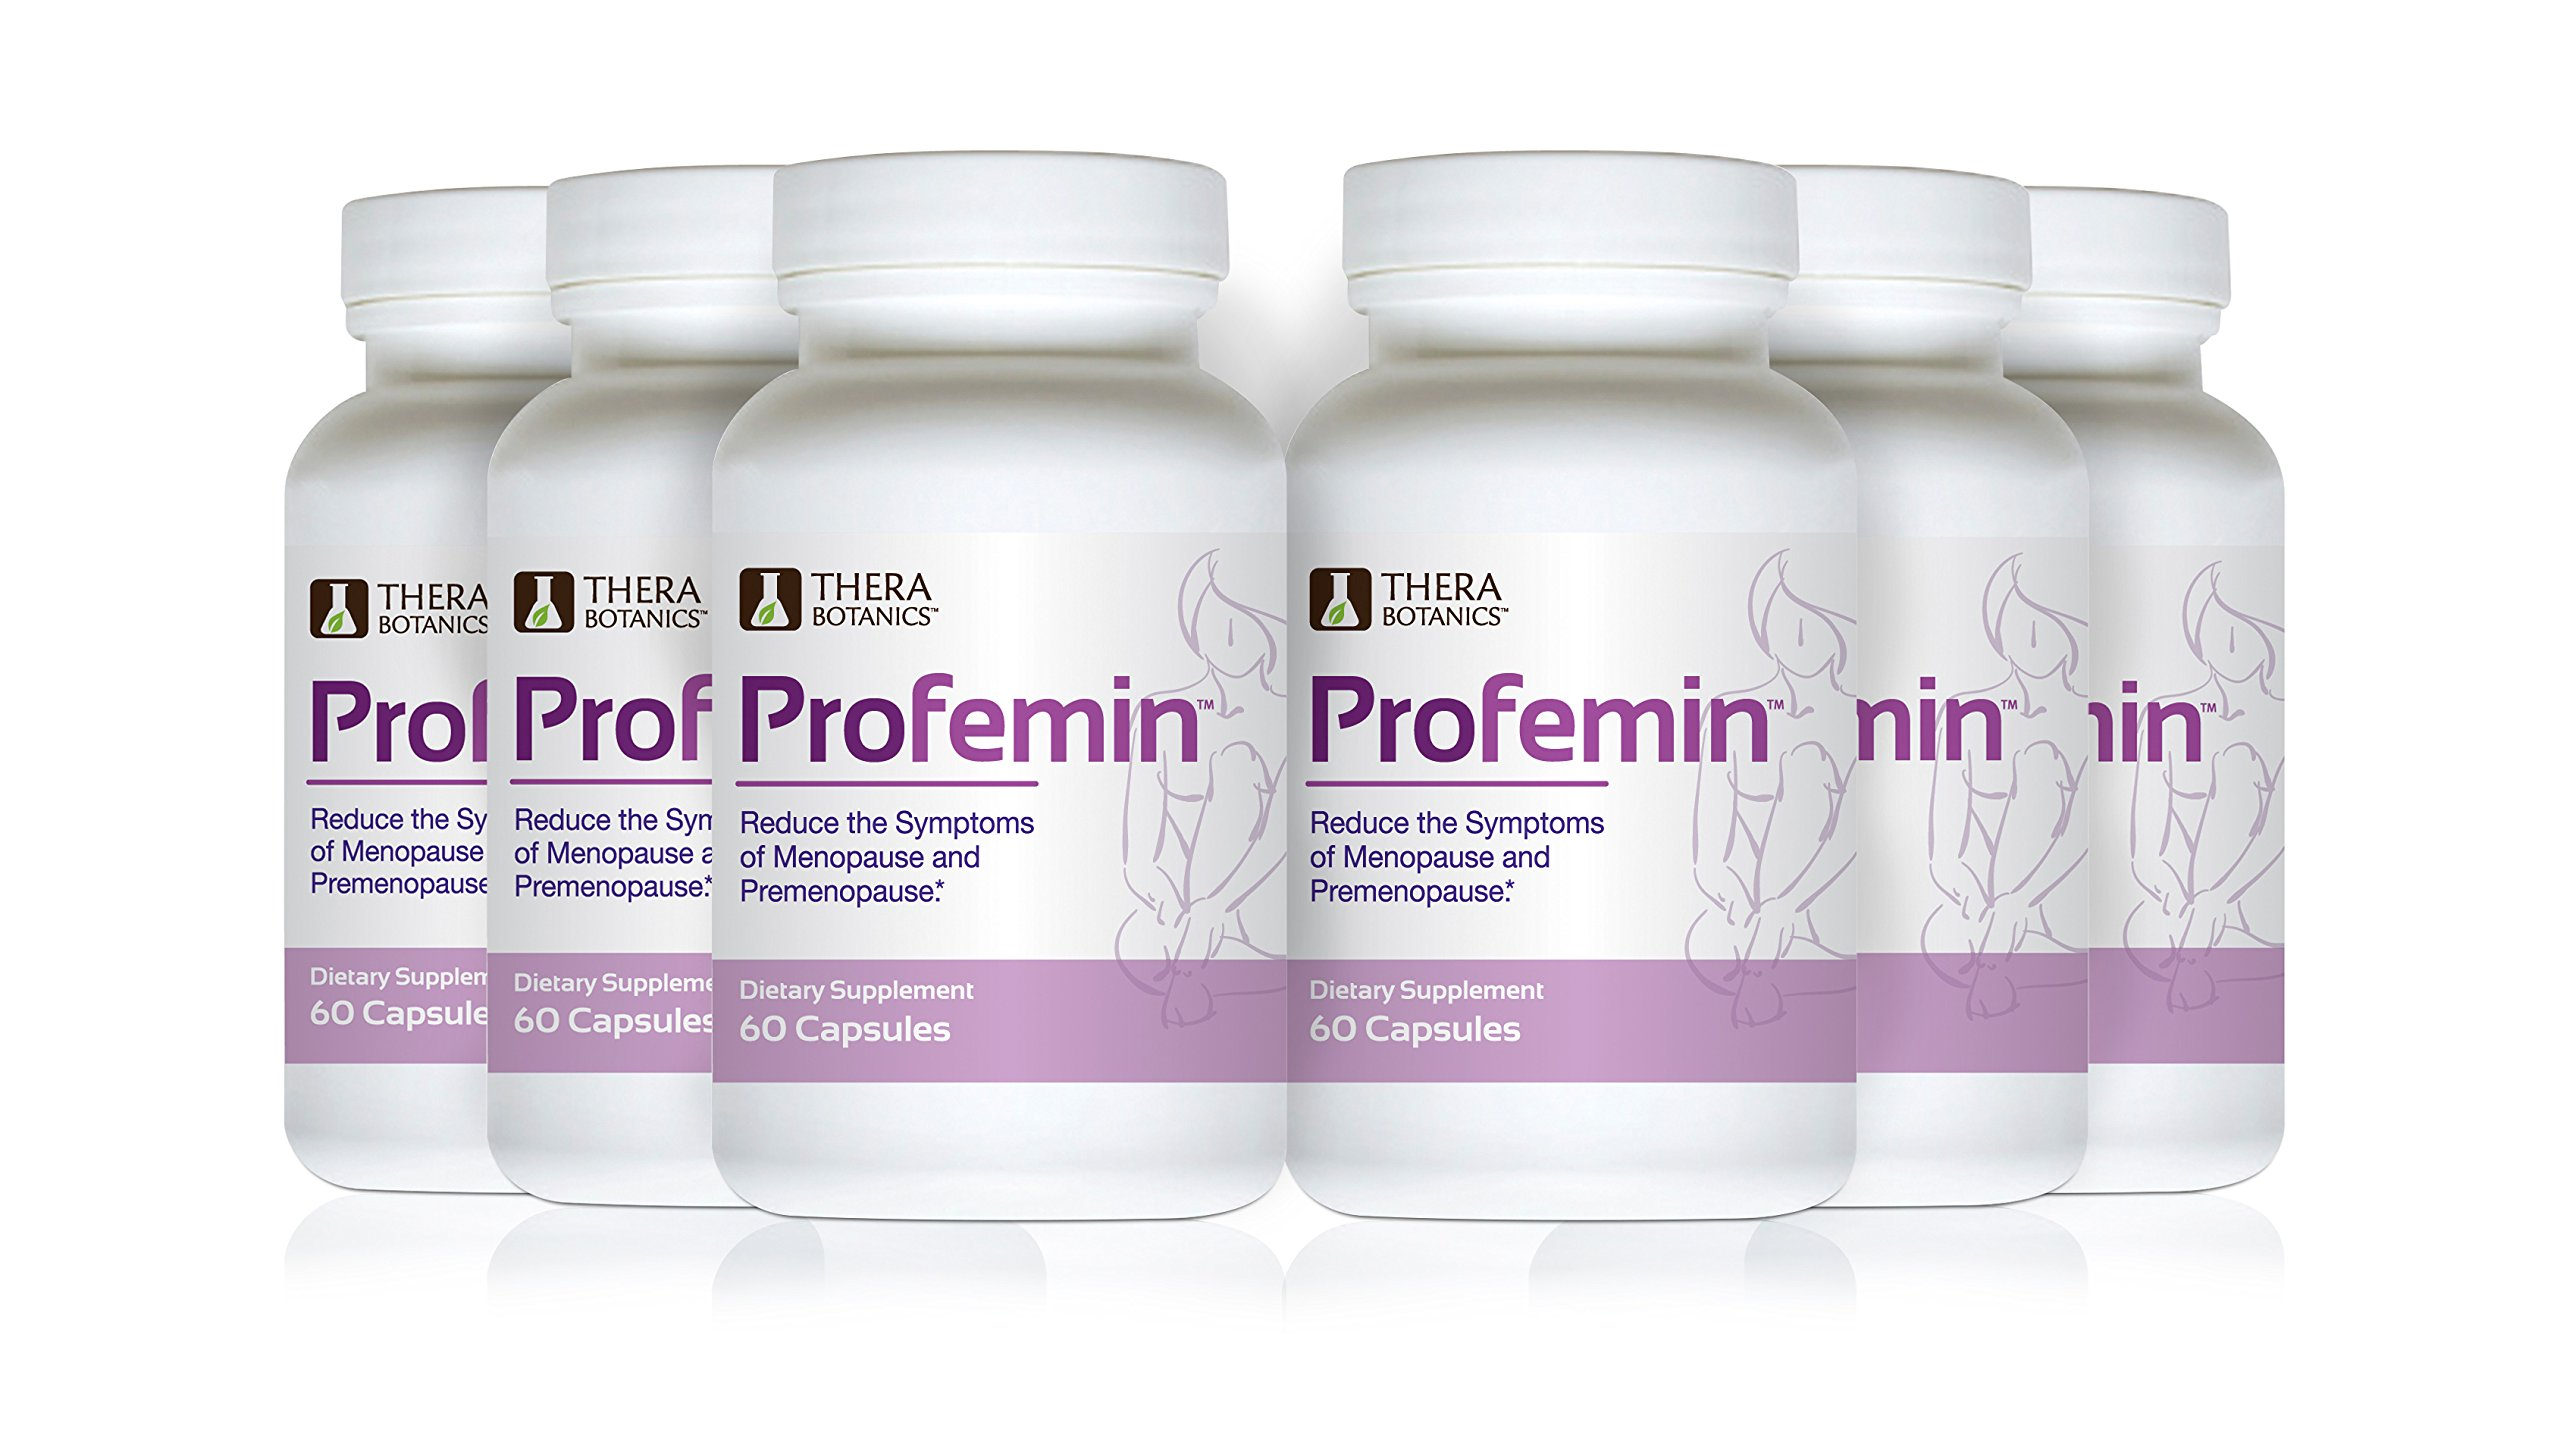 Profemin Natural Menopause & Premenopause Supplement - 6 Month Supply